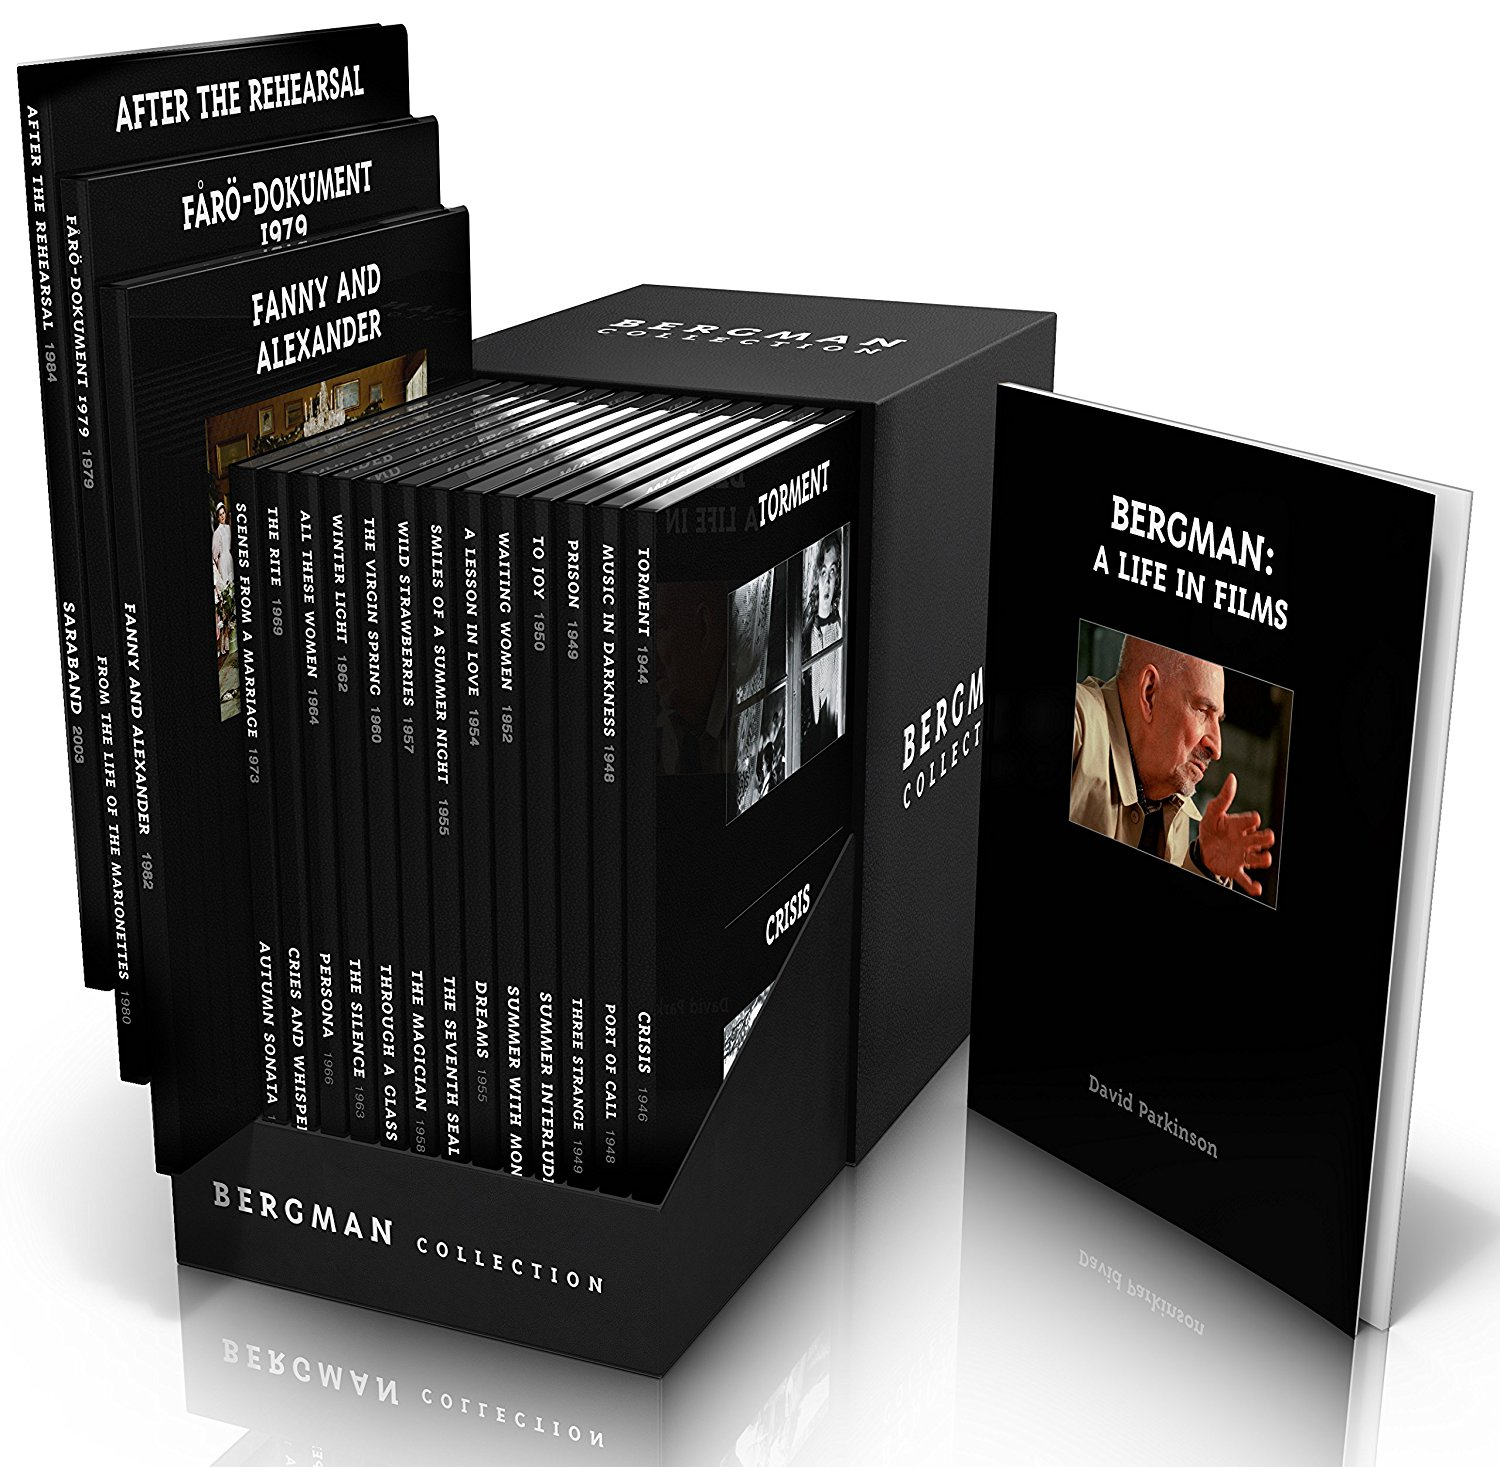 Buy Bergman - The Collection